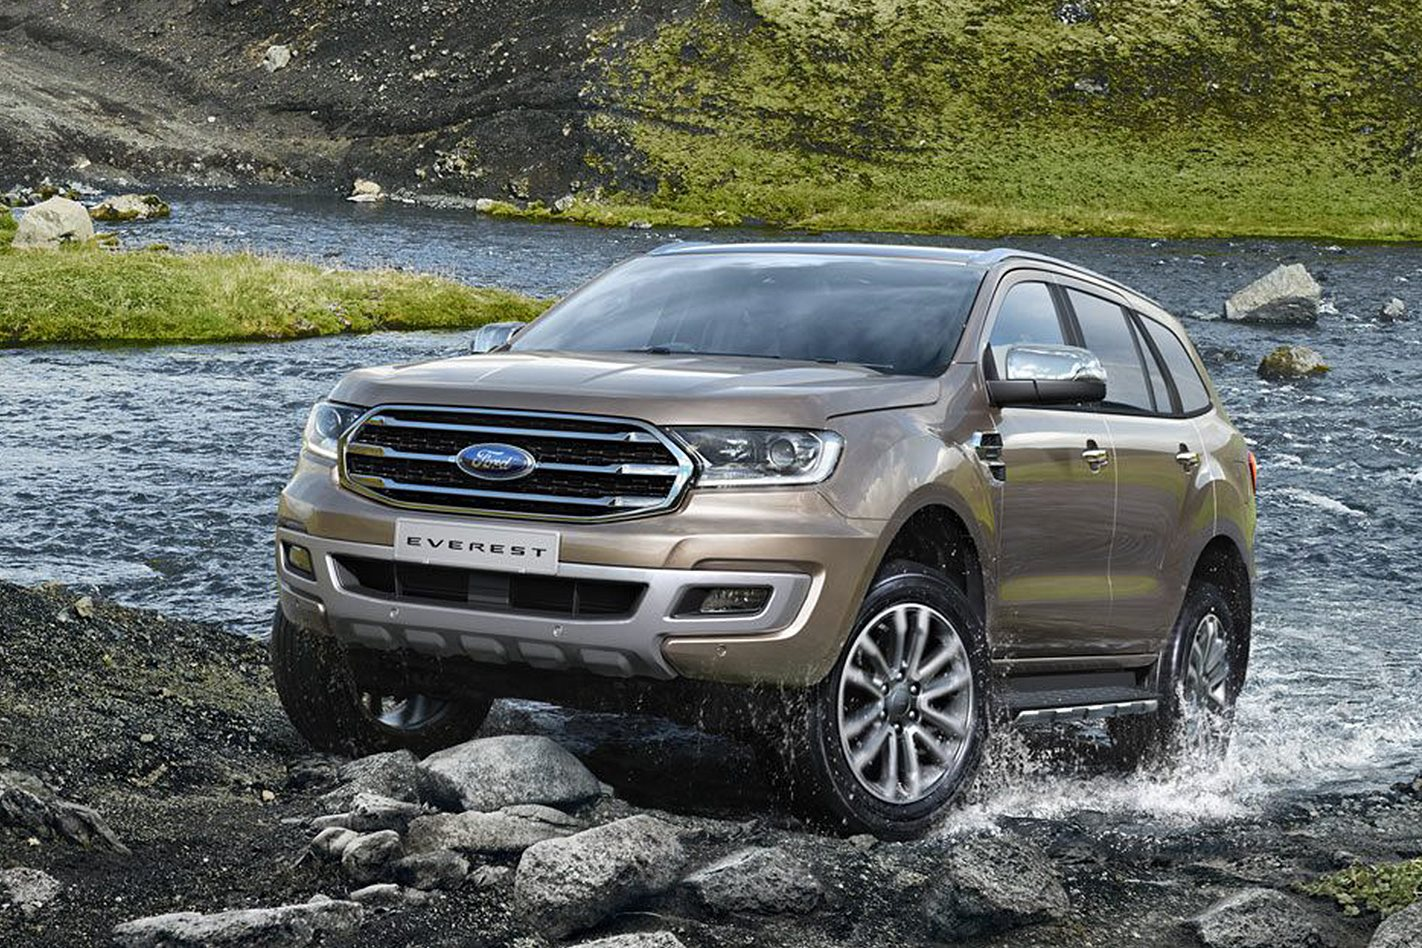 2019 Ford Everest Video Review